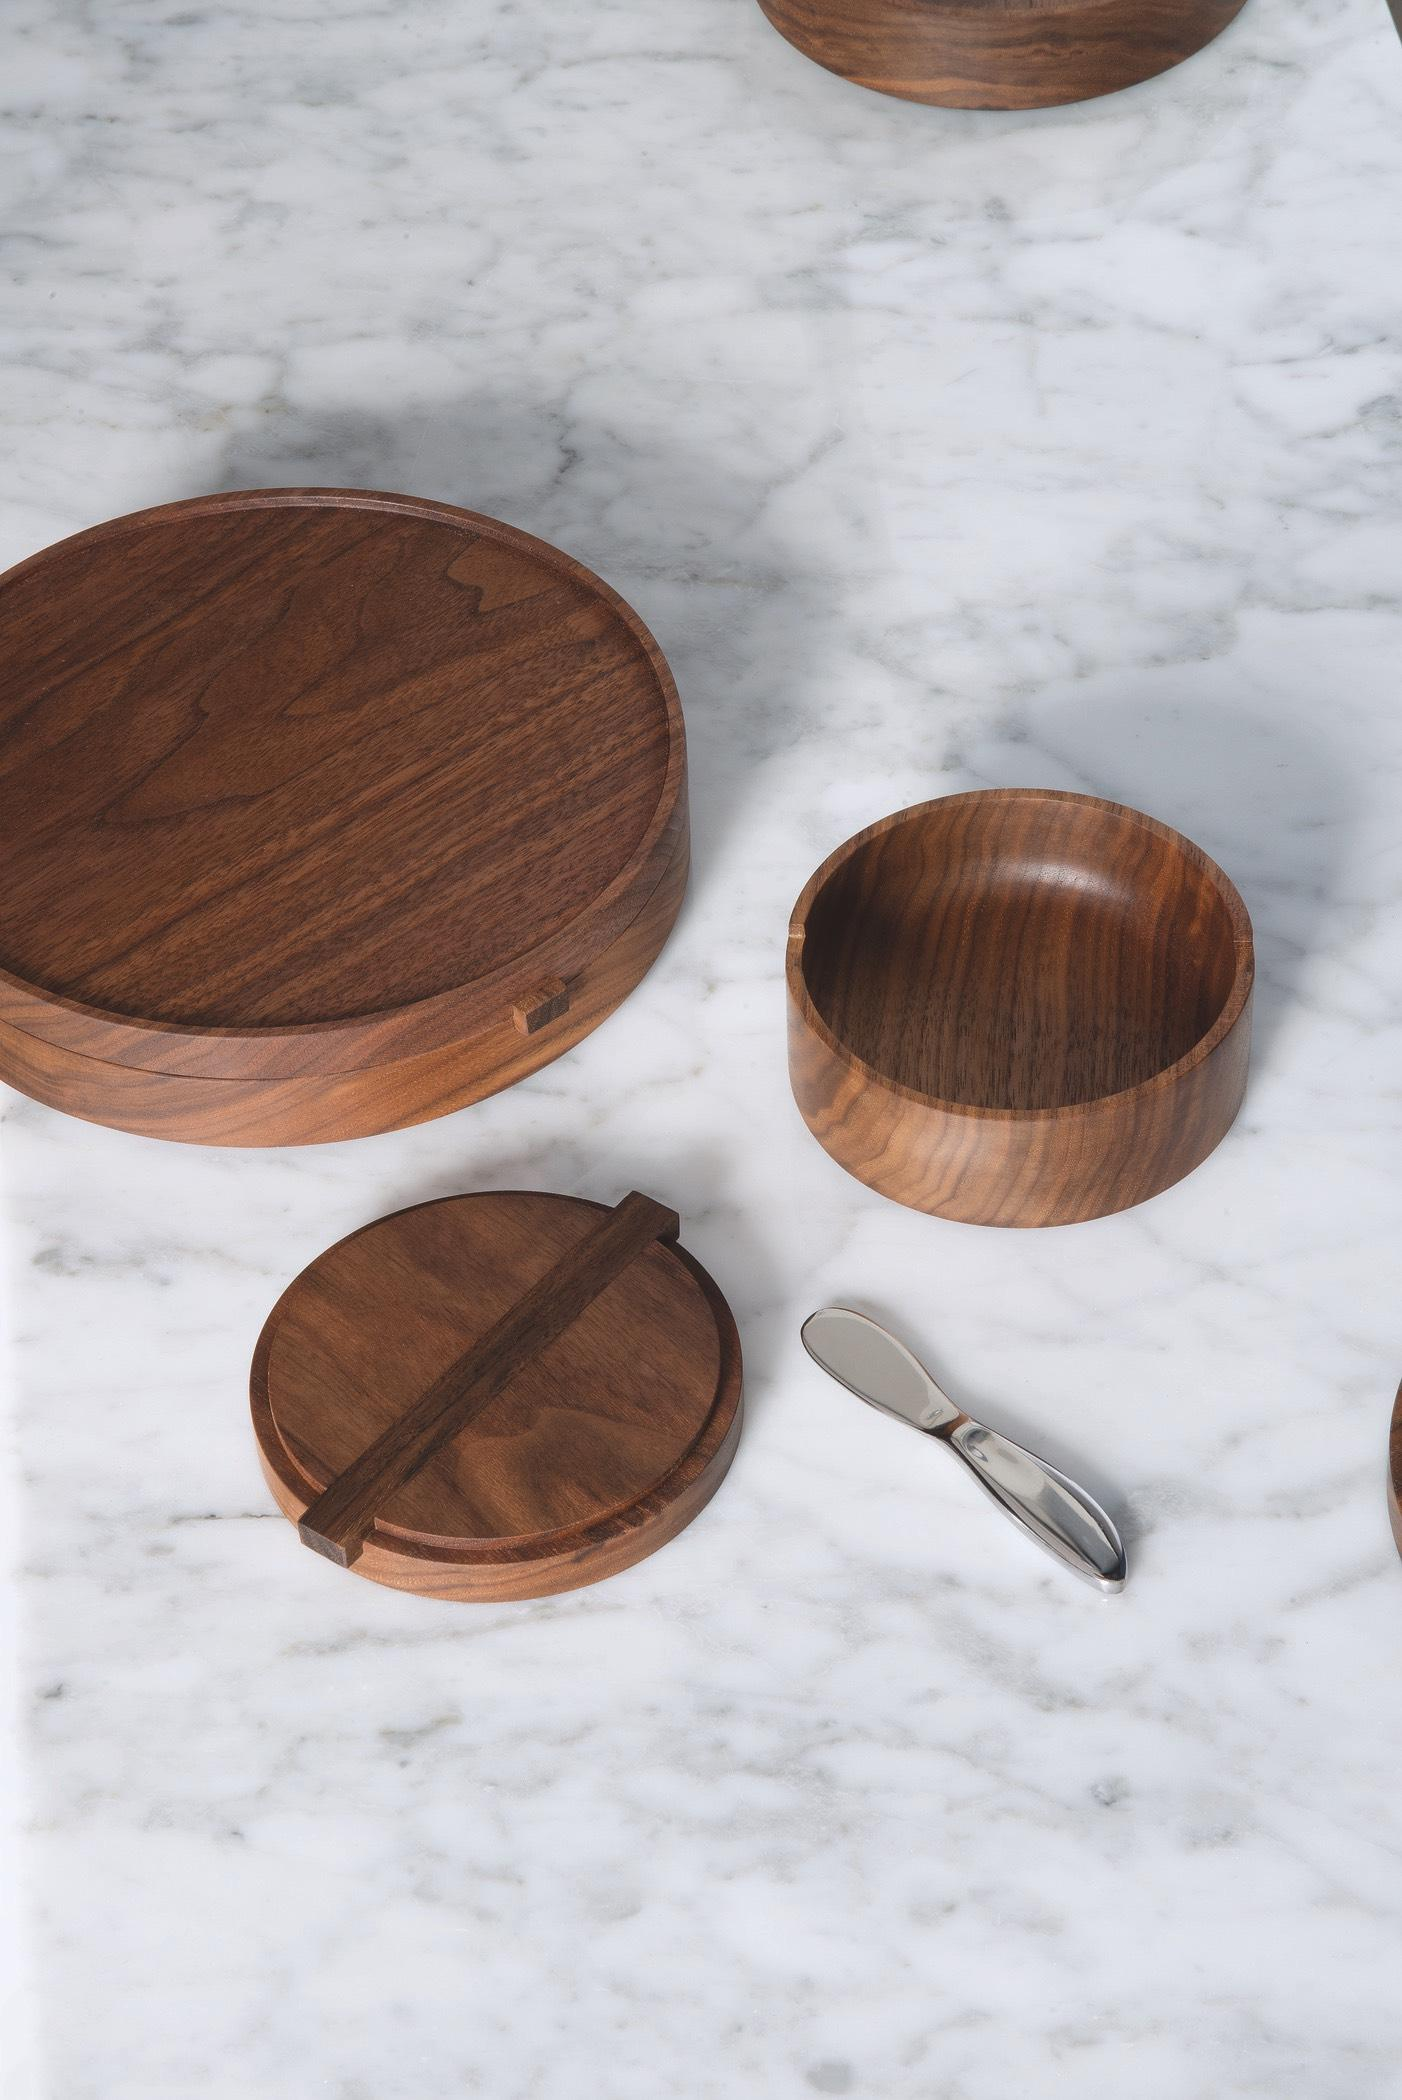 Walnut Wooden Bowls from Thos. Moser Handmade American Furniture // Price: $400 for set of 3 // Buy online or in store{&nbsp;} // www.thosmoser.com // (Image: Thos. Moser)<p></p>